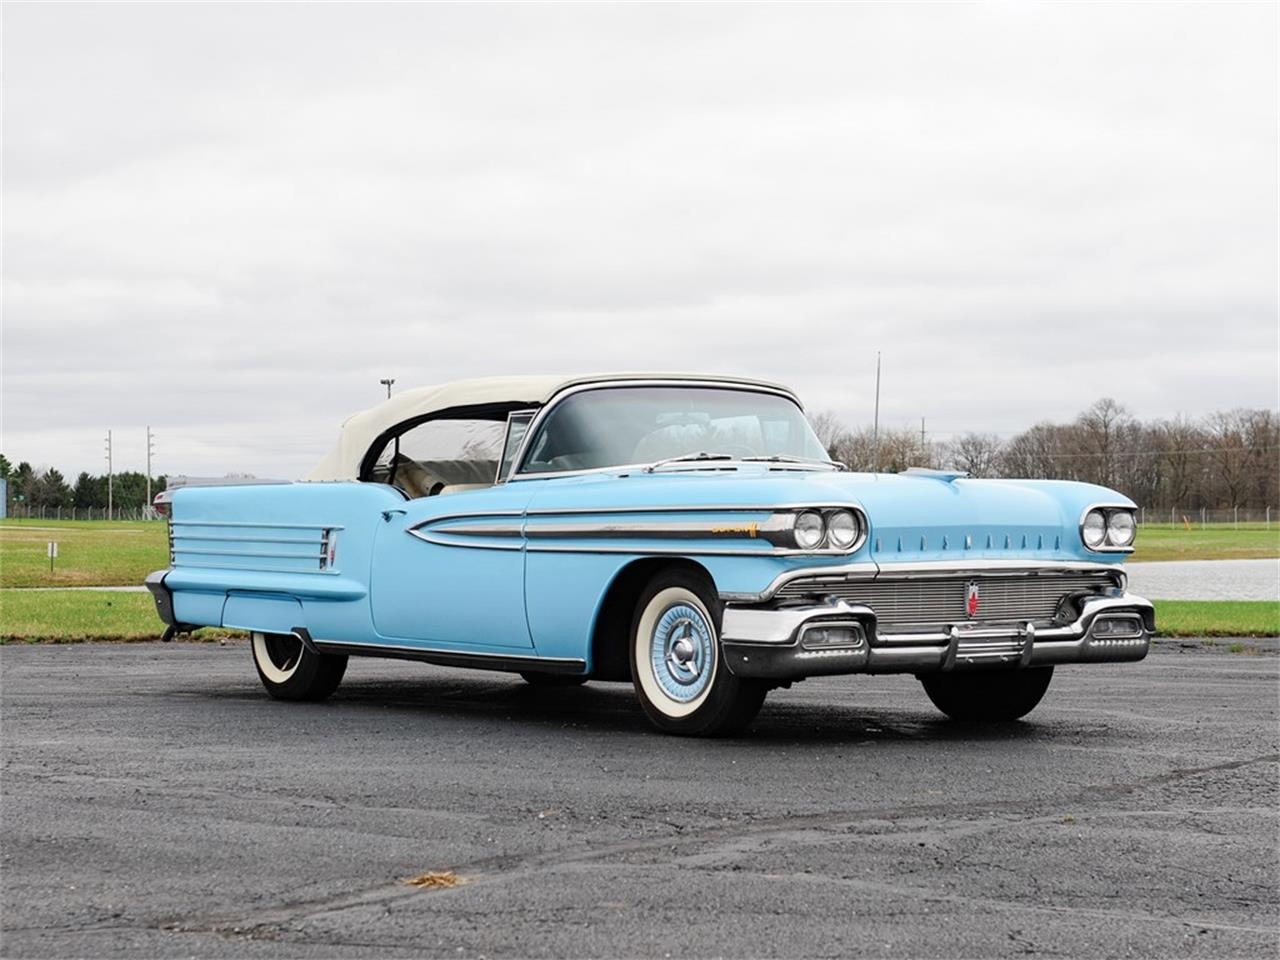 Large Picture of Classic 1958 Dynamic 88 located in Auburn Indiana Auction Vehicle Offered by RM Sotheby's - PXGU